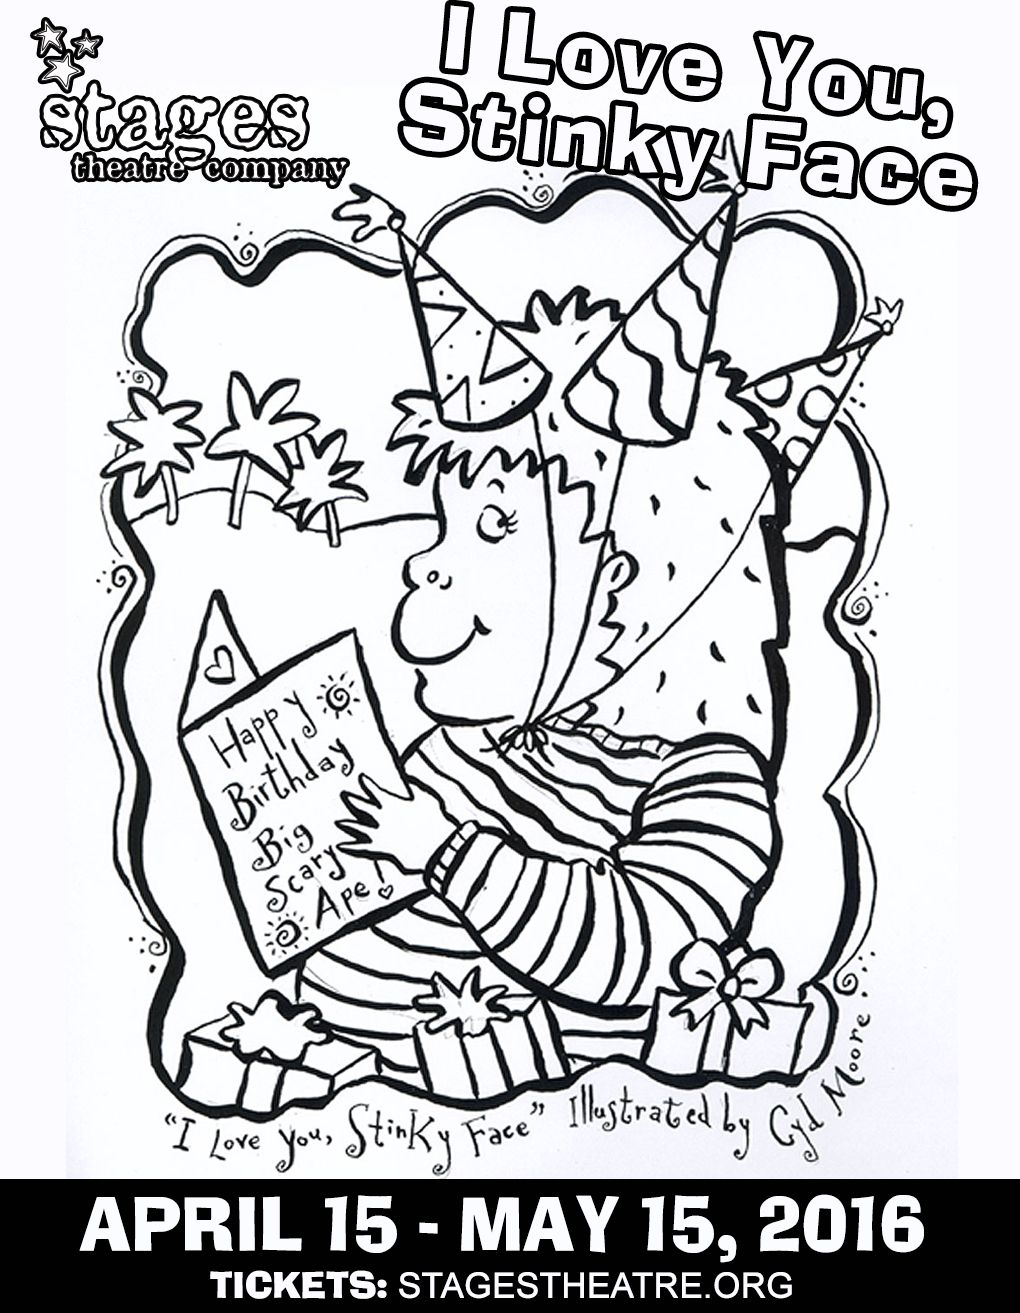 Coloring Sheet for I Love You, Stinky Face | I Love You, Stinky Face ...